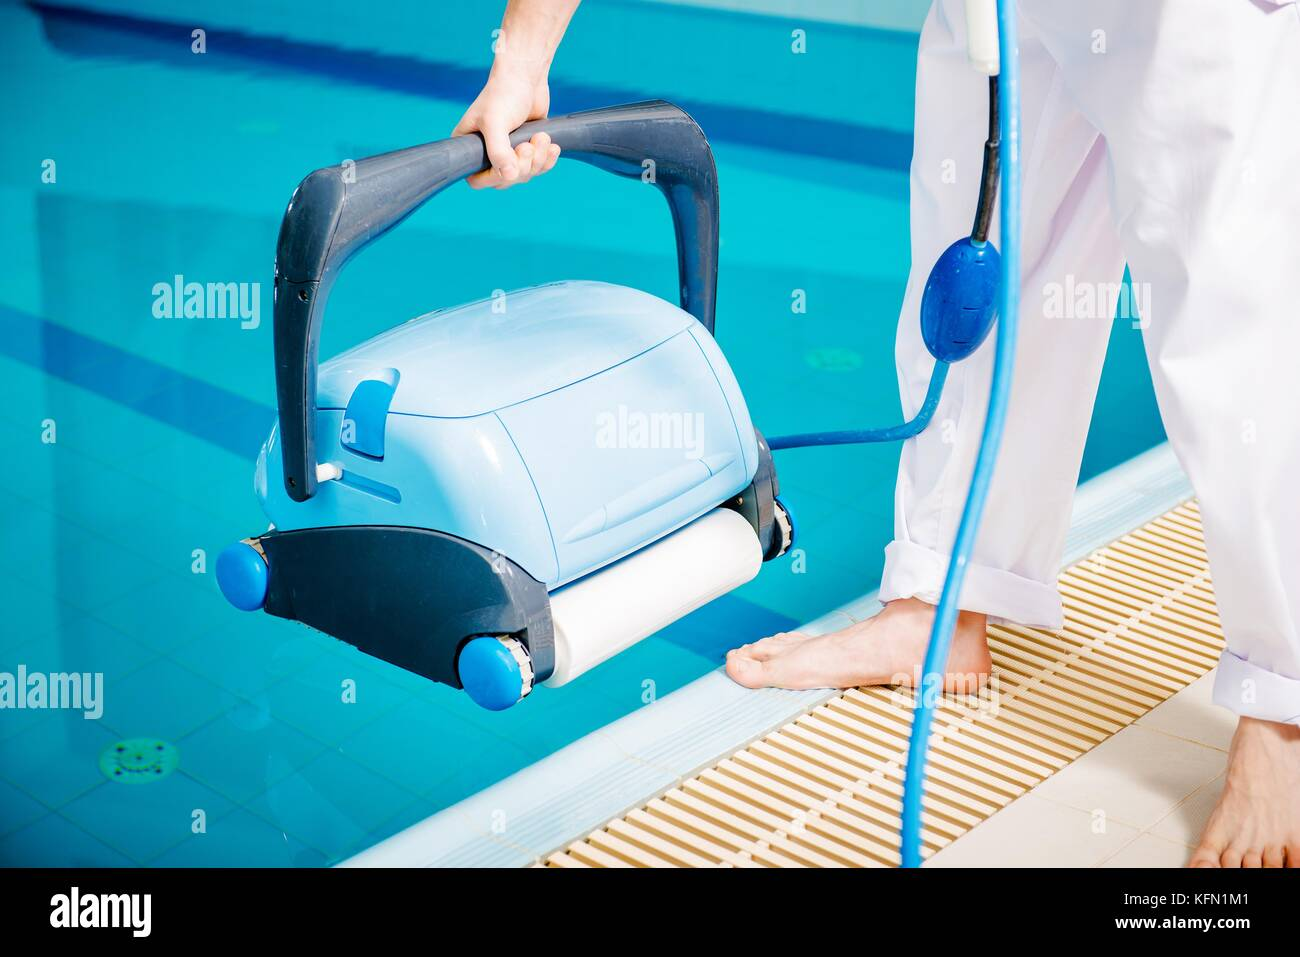 Swimming pool cleaner pool cleaning machine and the caucasian stock photo 164575489 alamy for Swimming pool cleaning machine